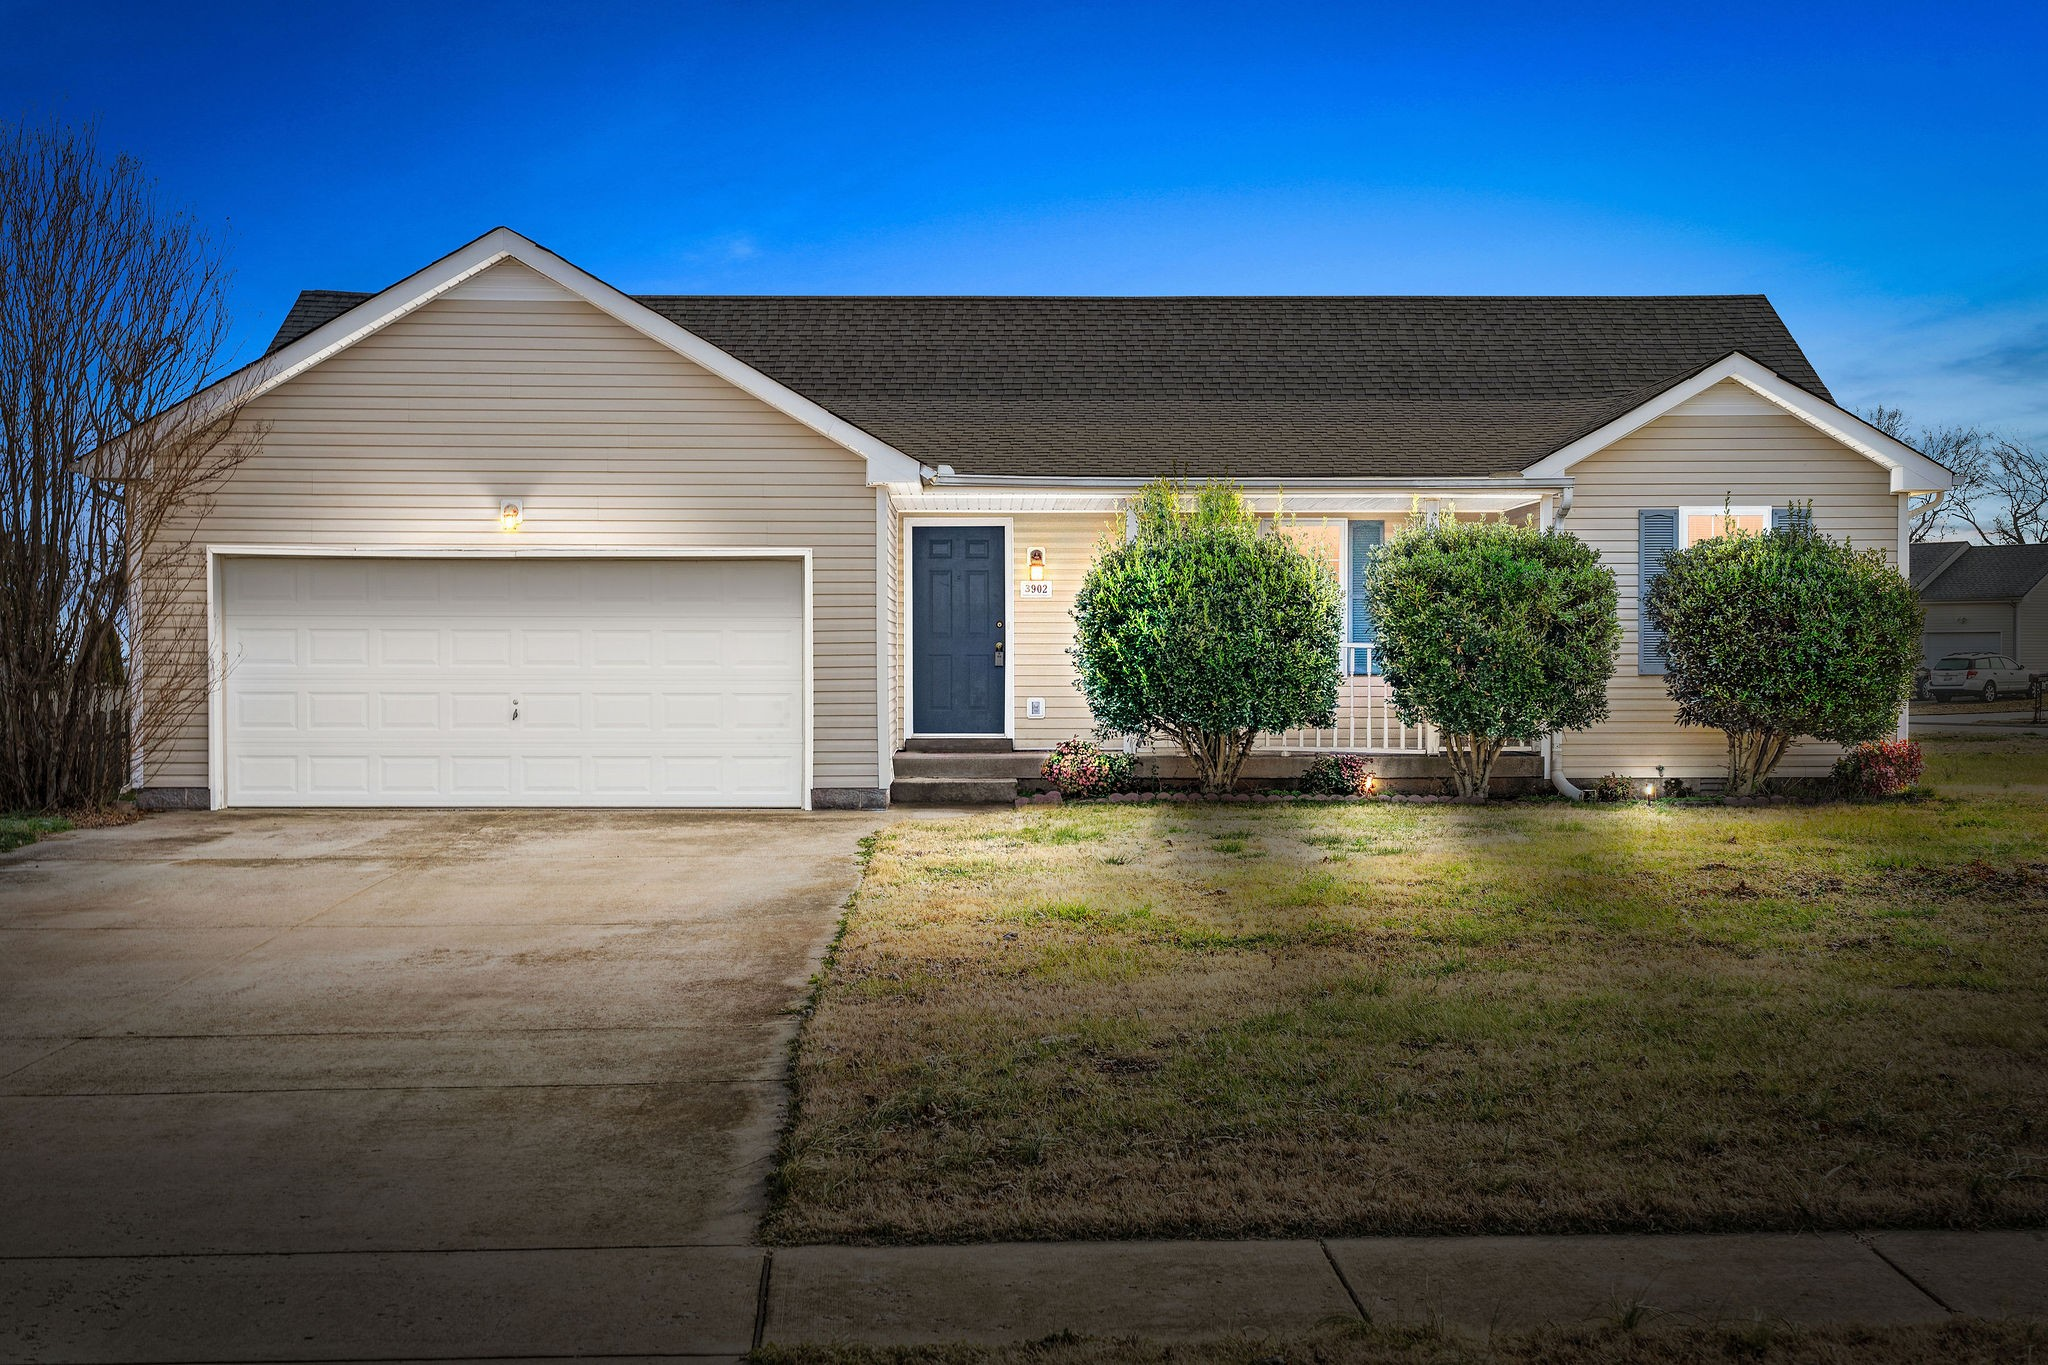 3902 Roscommon Way Property Photo - Clarksville, TN real estate listing